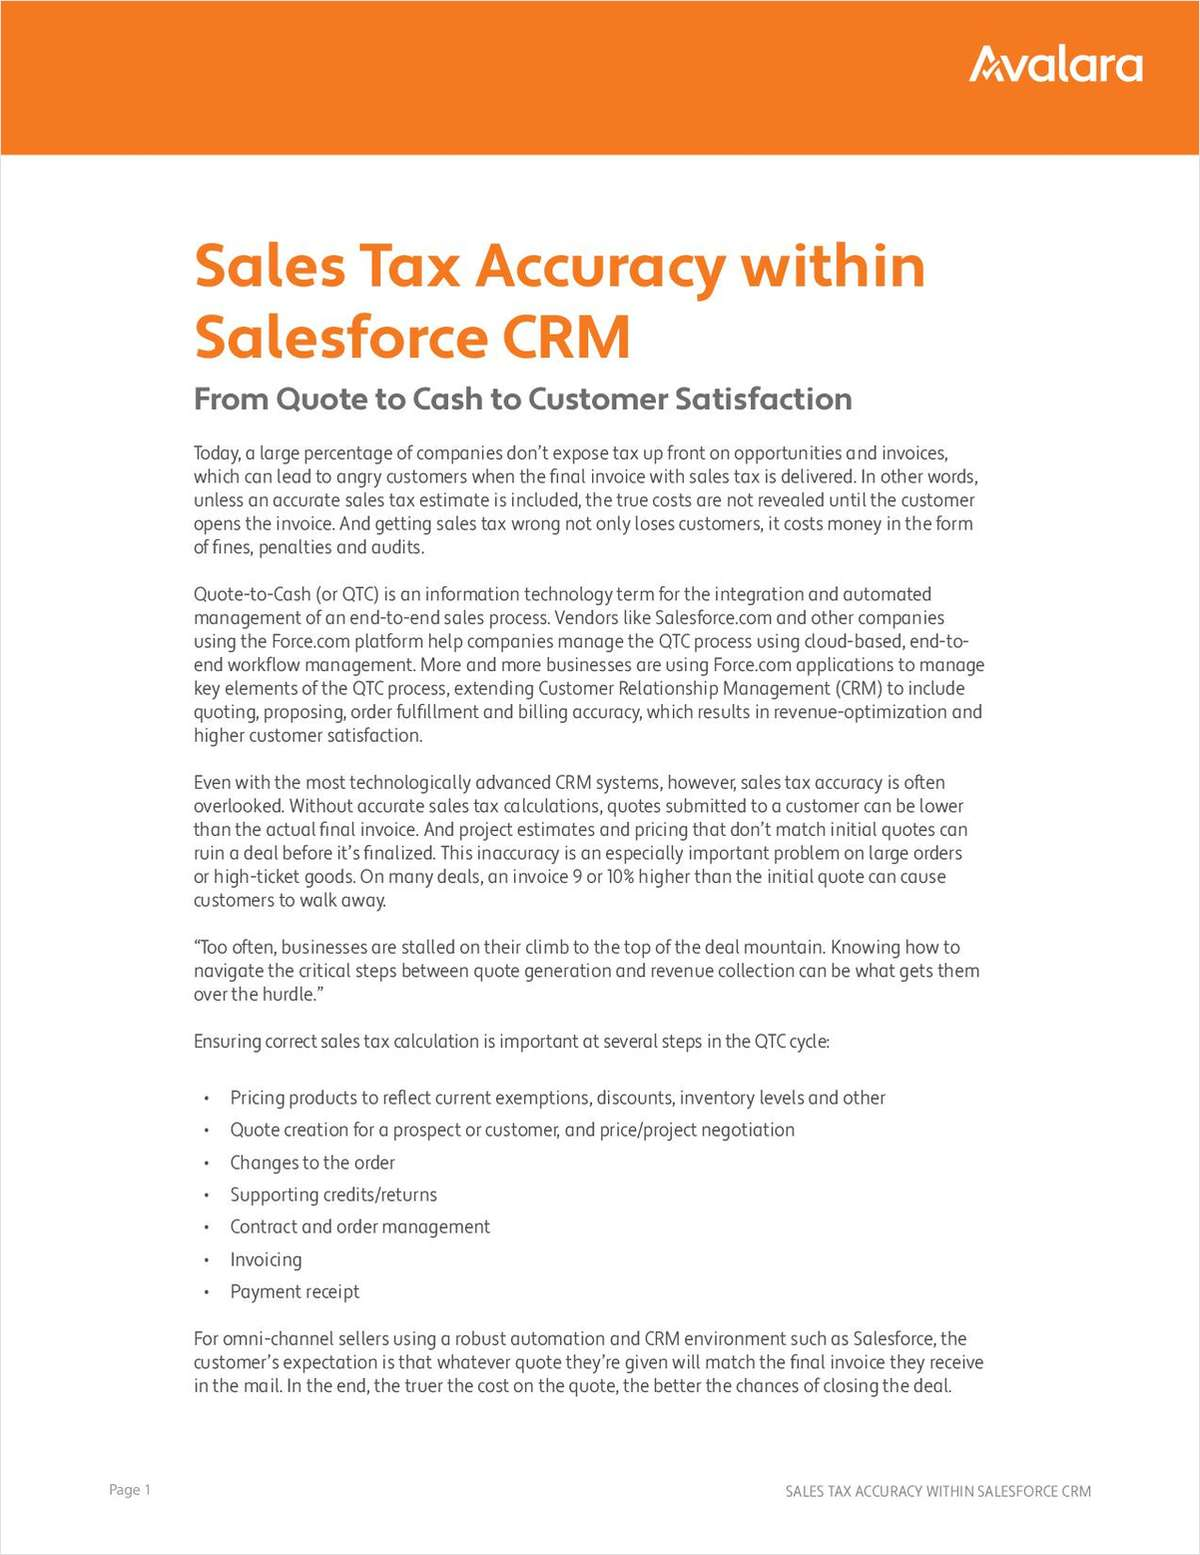 From Quote to Cash to Customer Satisfaction: Sales Tax Accuracy within Your CRM